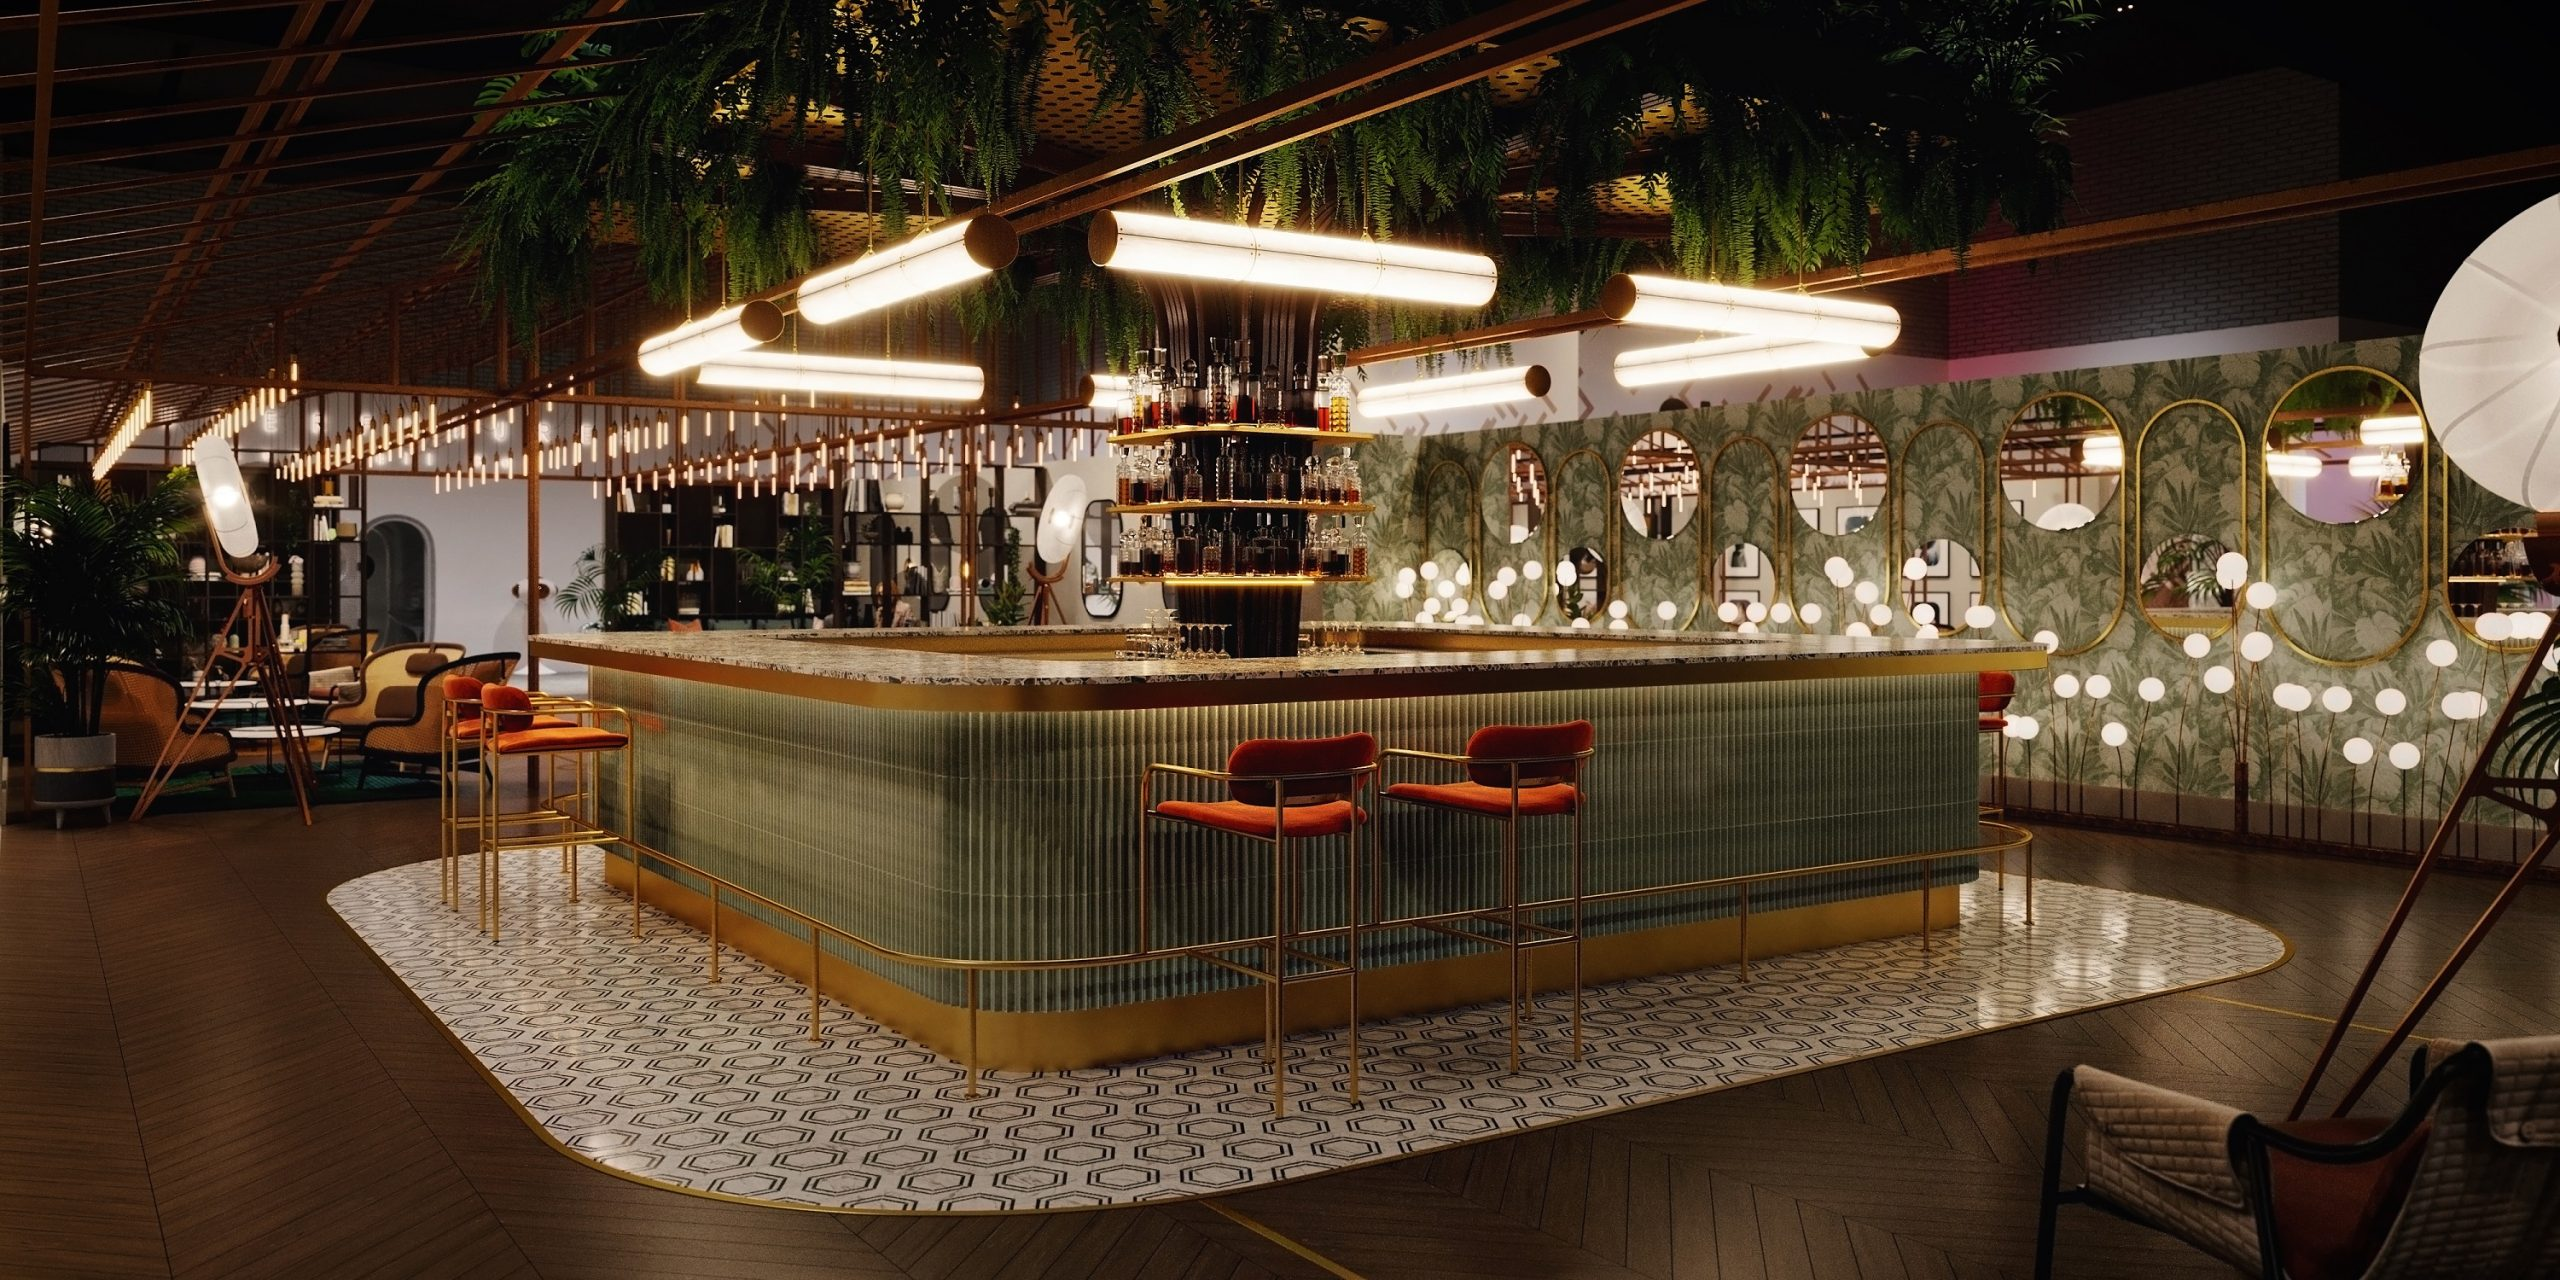 Sleep + Eat: Virtual Tour of the Event Lounge Bar Designed by Atellior